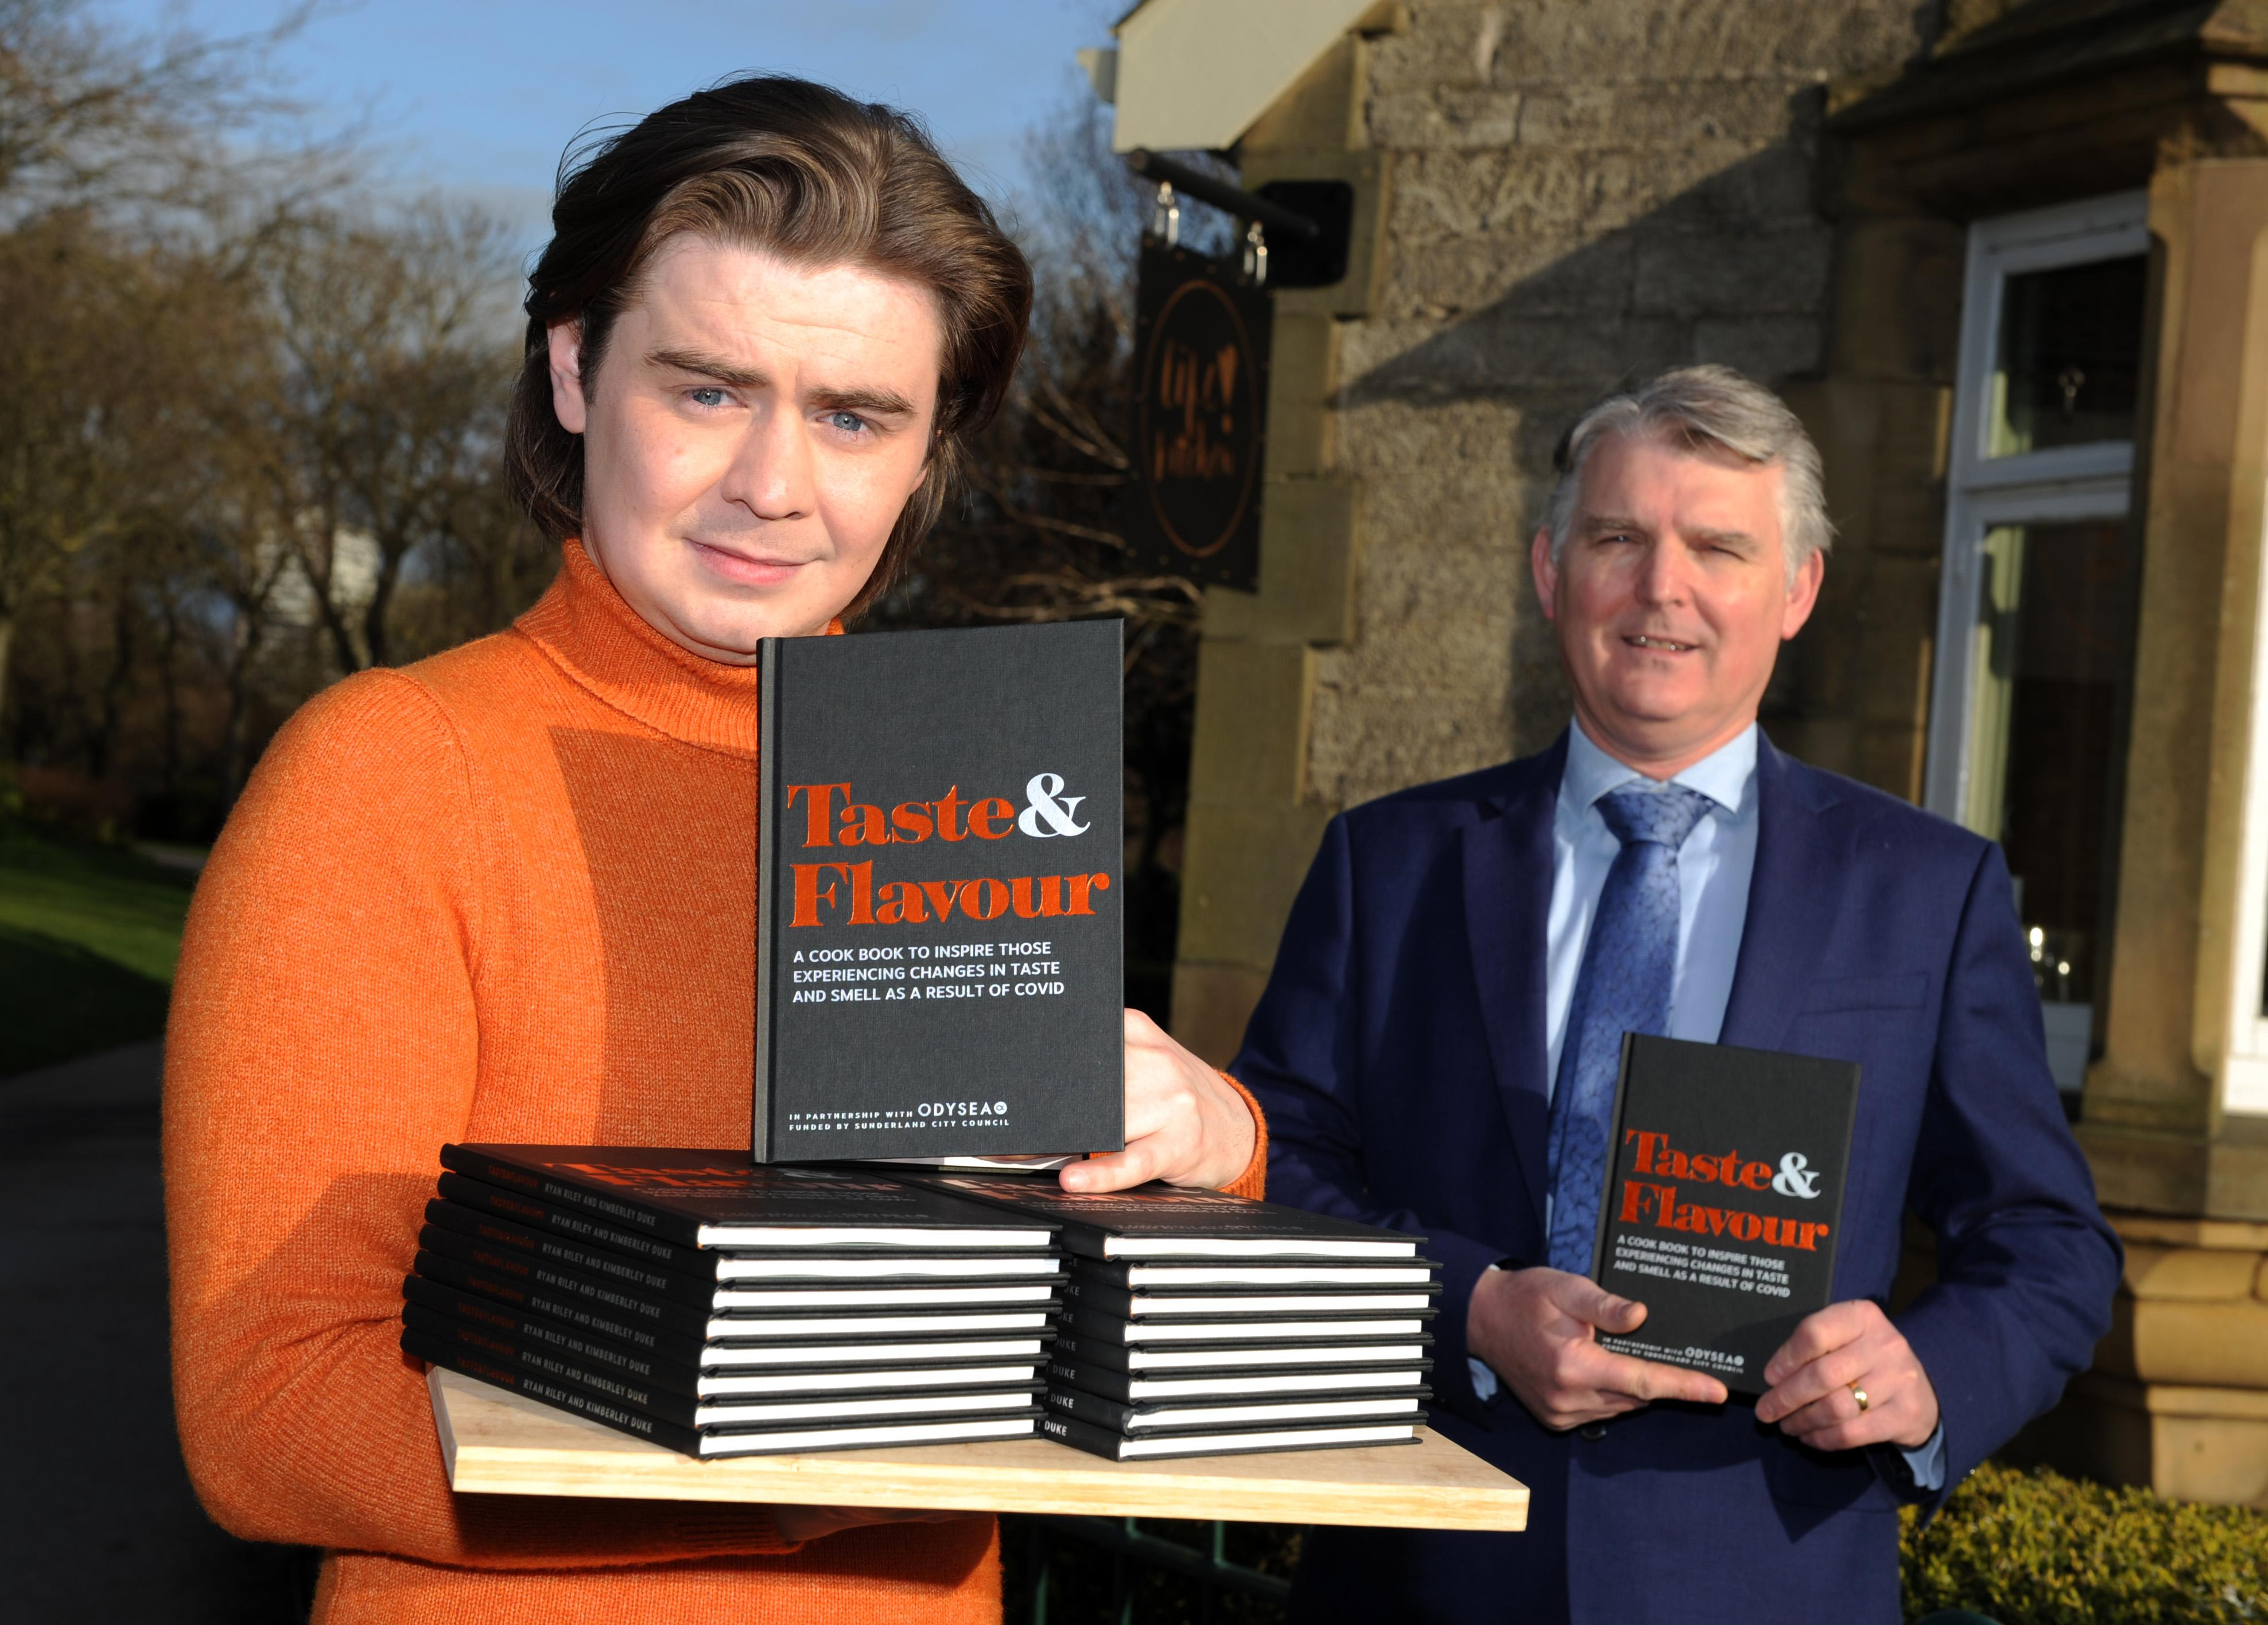 Ryan Riley who set up Life Kitchen with his new book Taste & Flavour and Patrick Melia, Chief Executive of Sunderland City Council